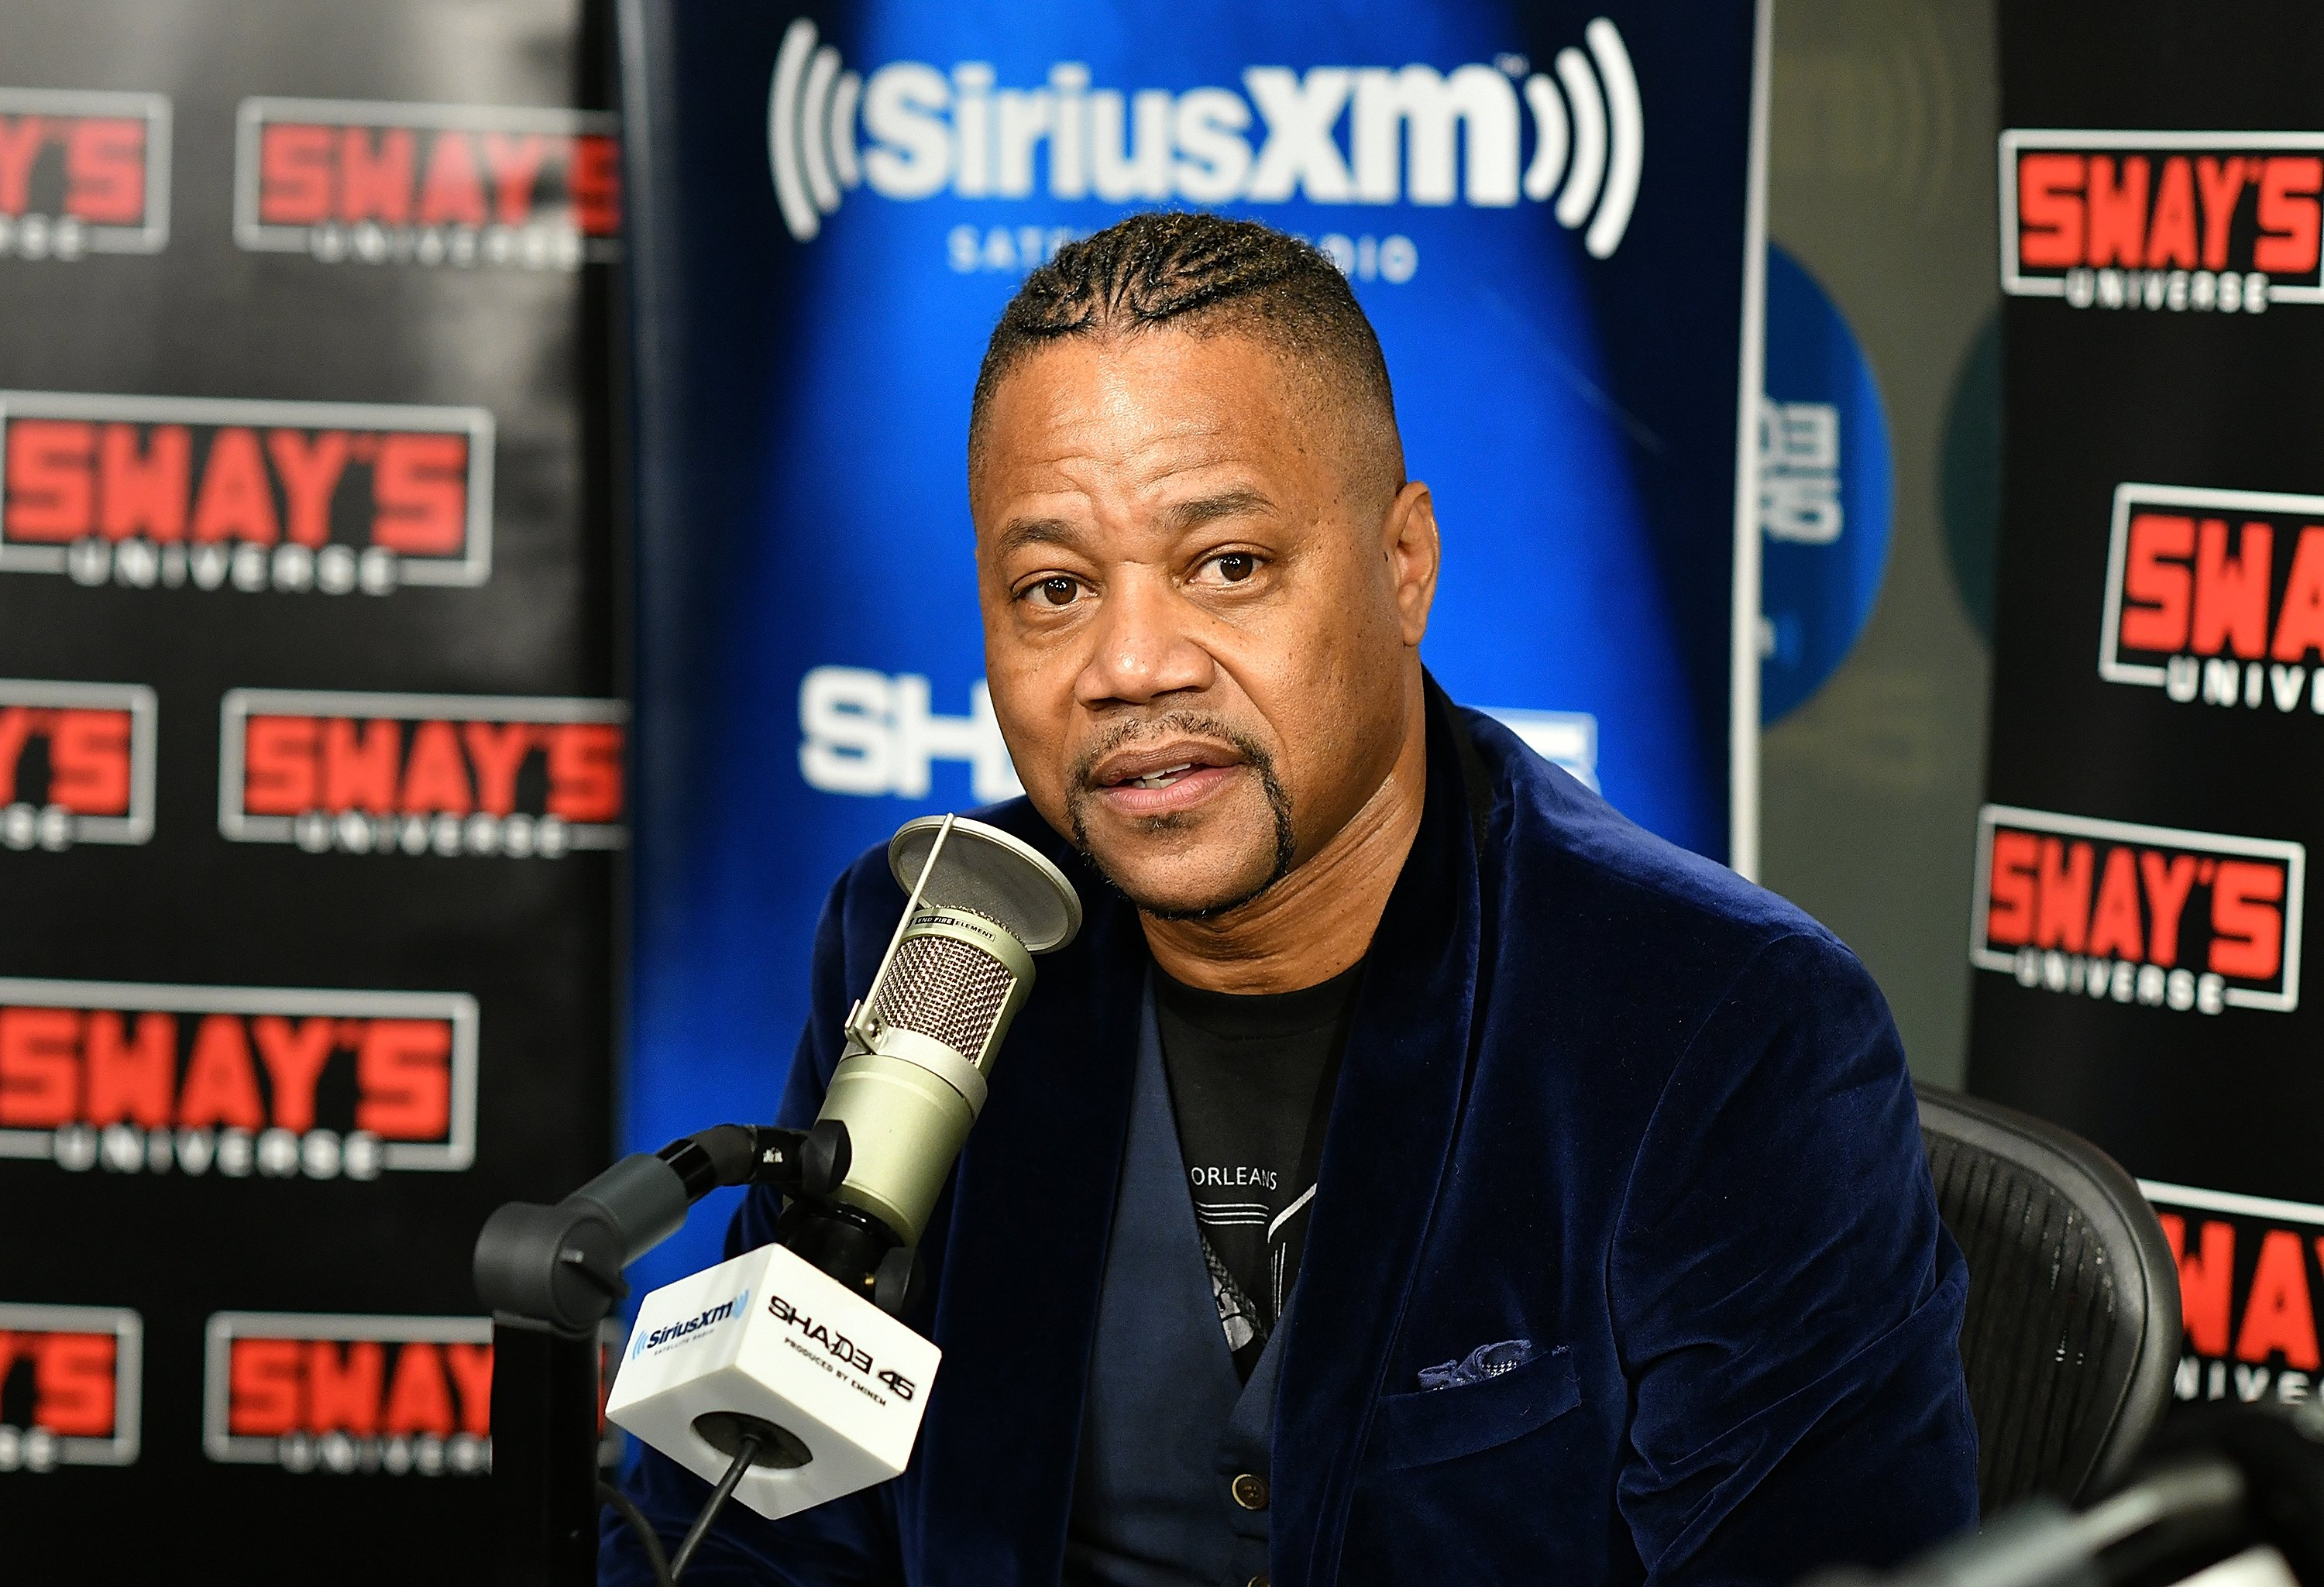 Cuba Gooding, Jr. during a radio interview in October 2018. | Photo: Getty Images